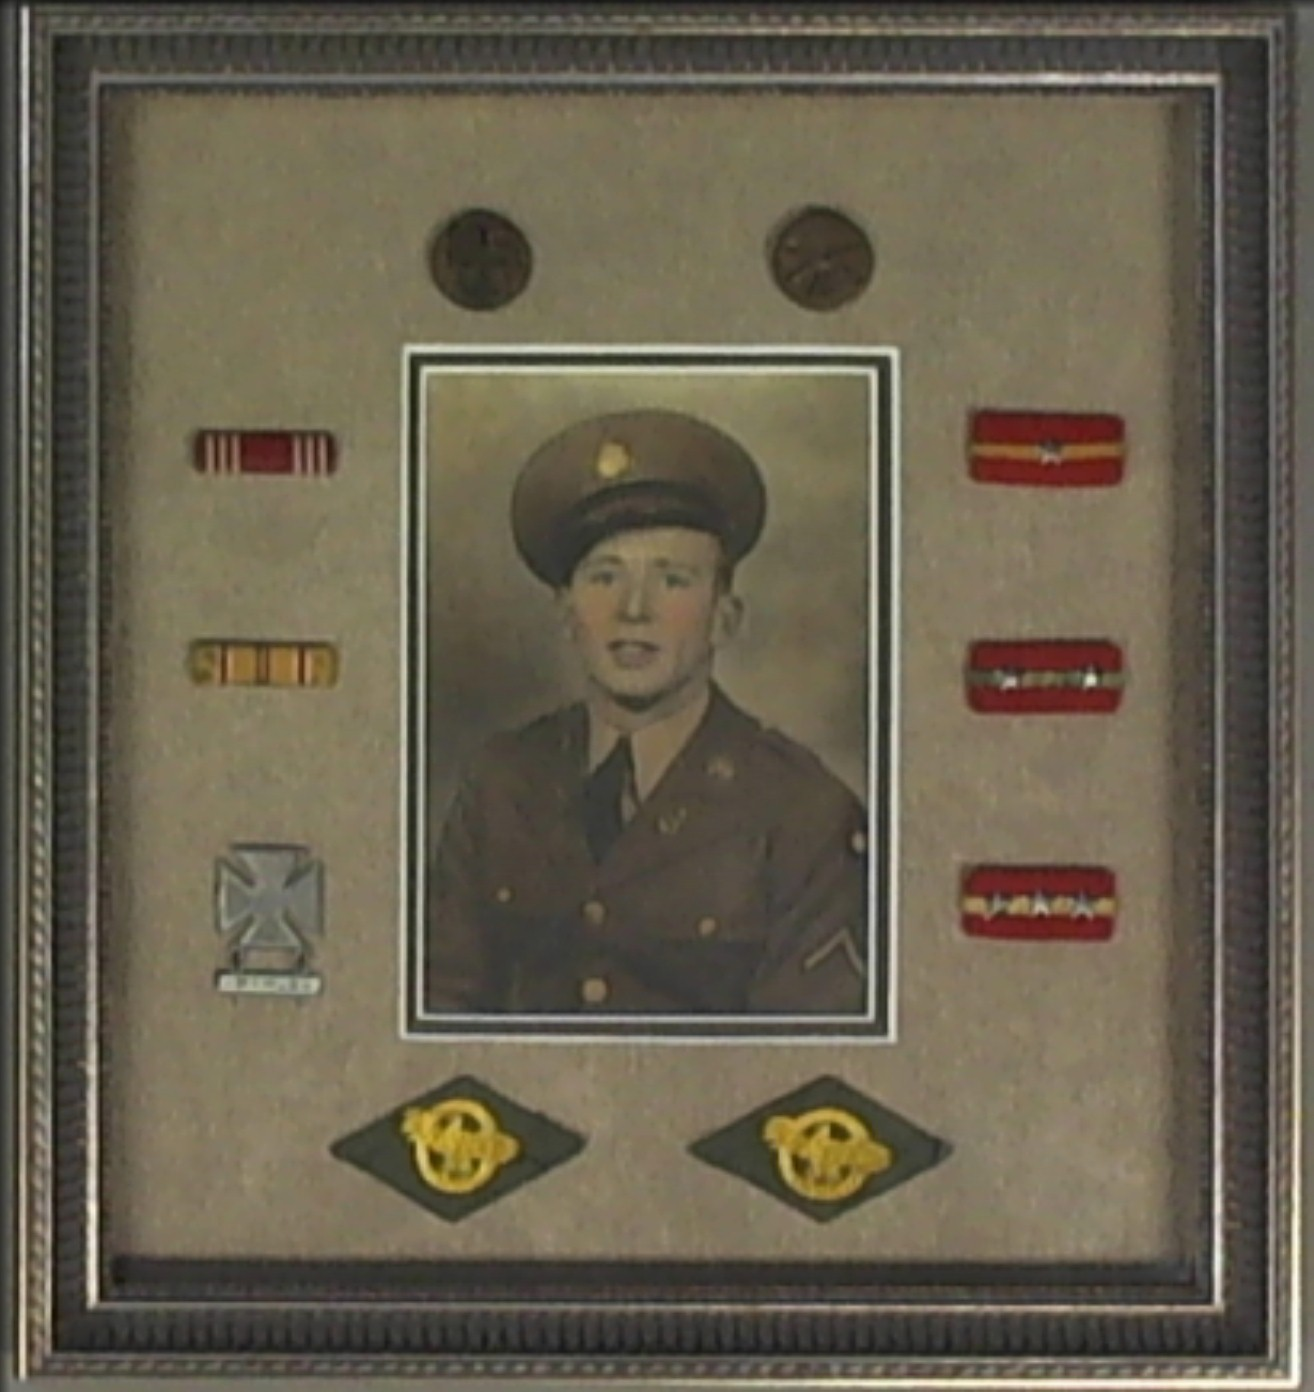 Framed Military Metals with photo